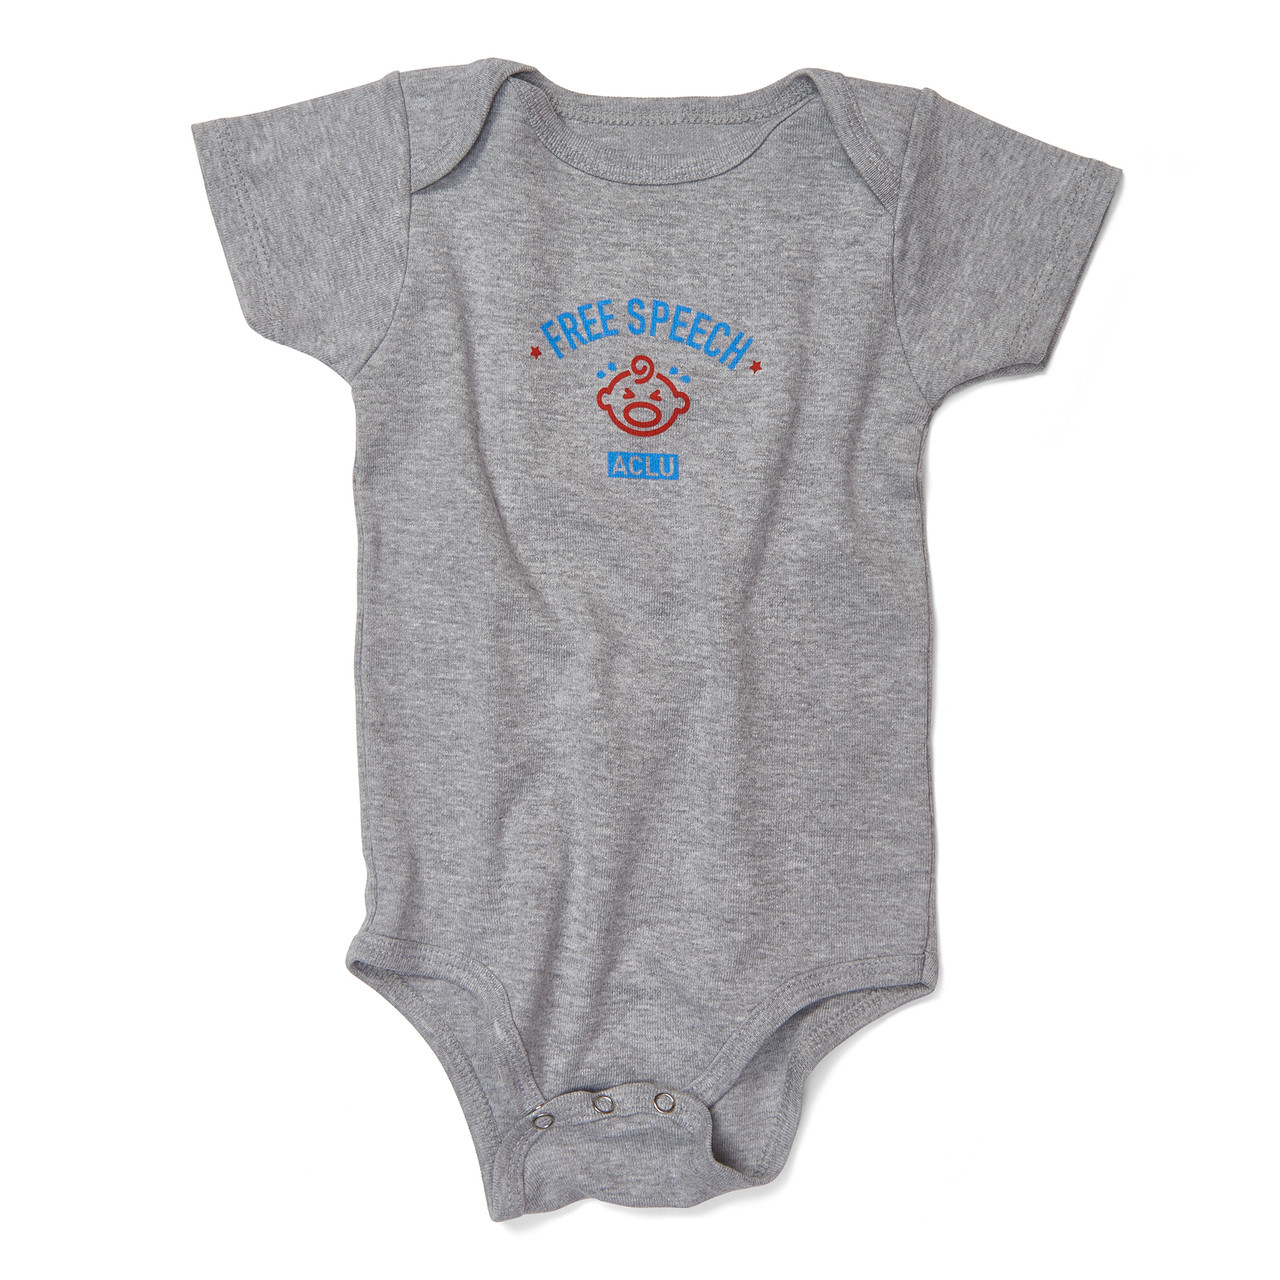 6f5a67585dfd Free Speech Onesie - Gray or Yellow - ACLU